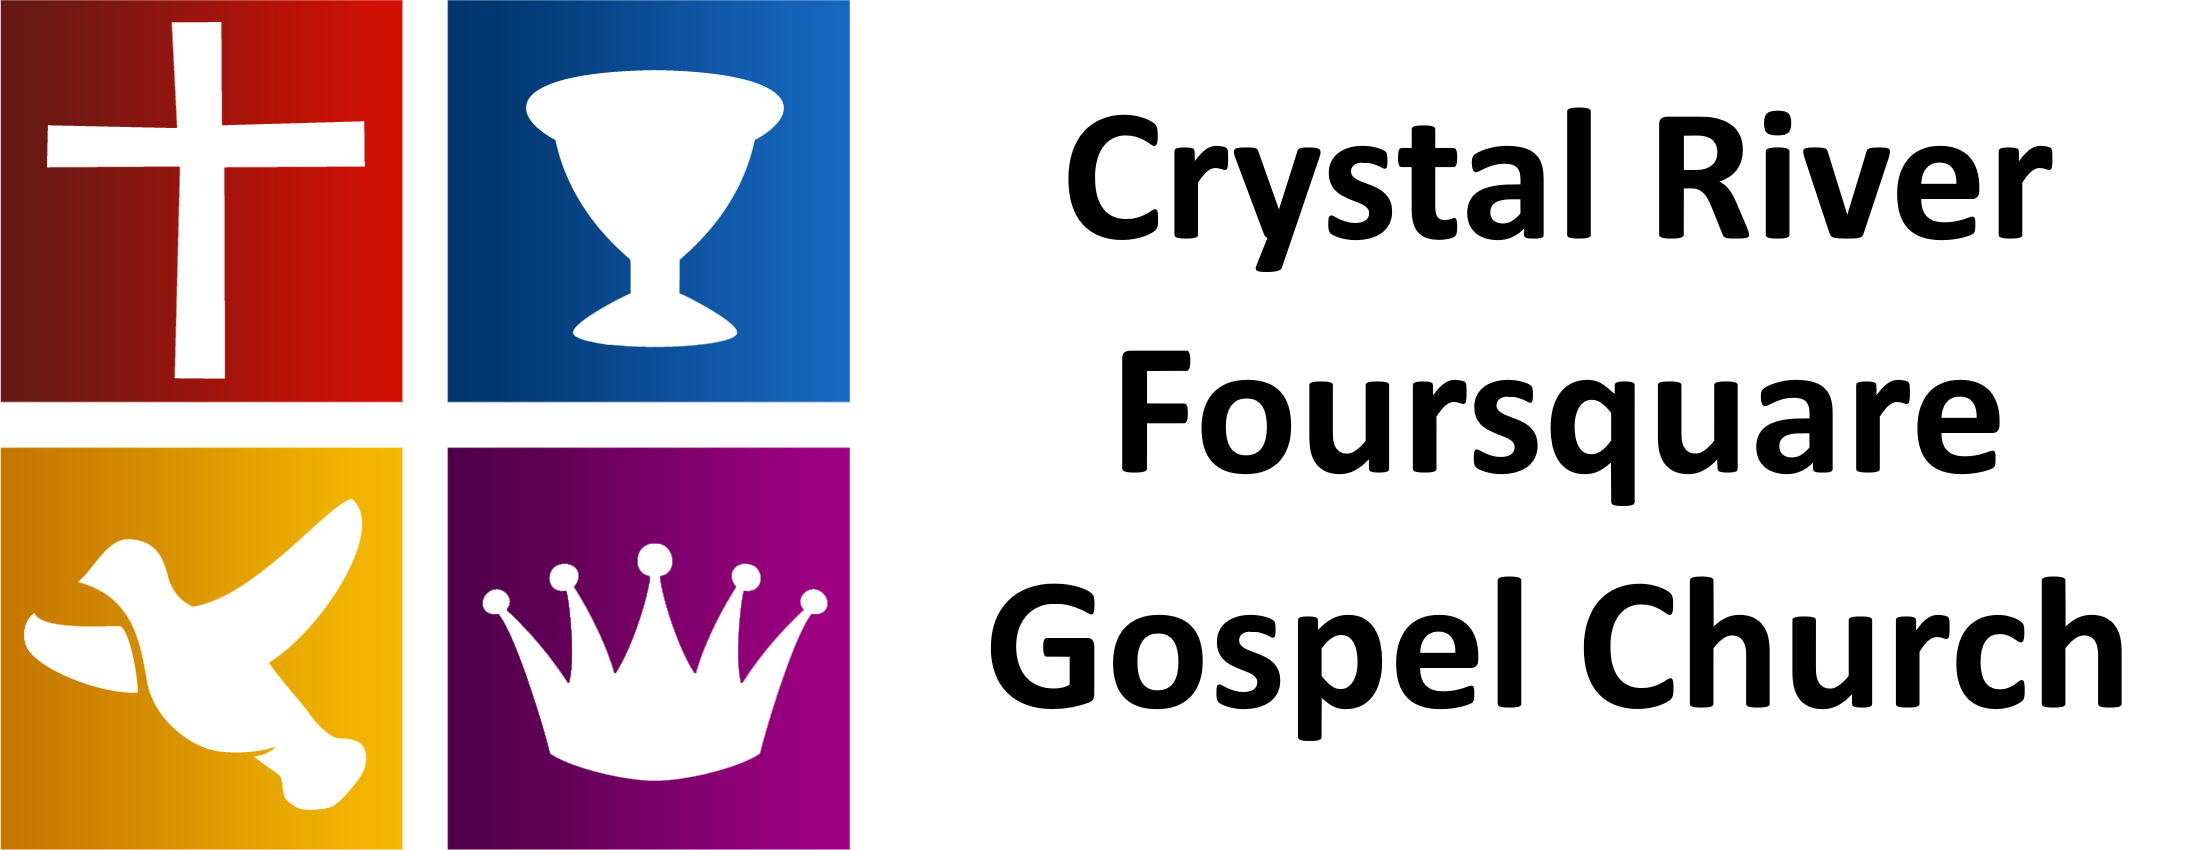 Crystal River Foursquare Church